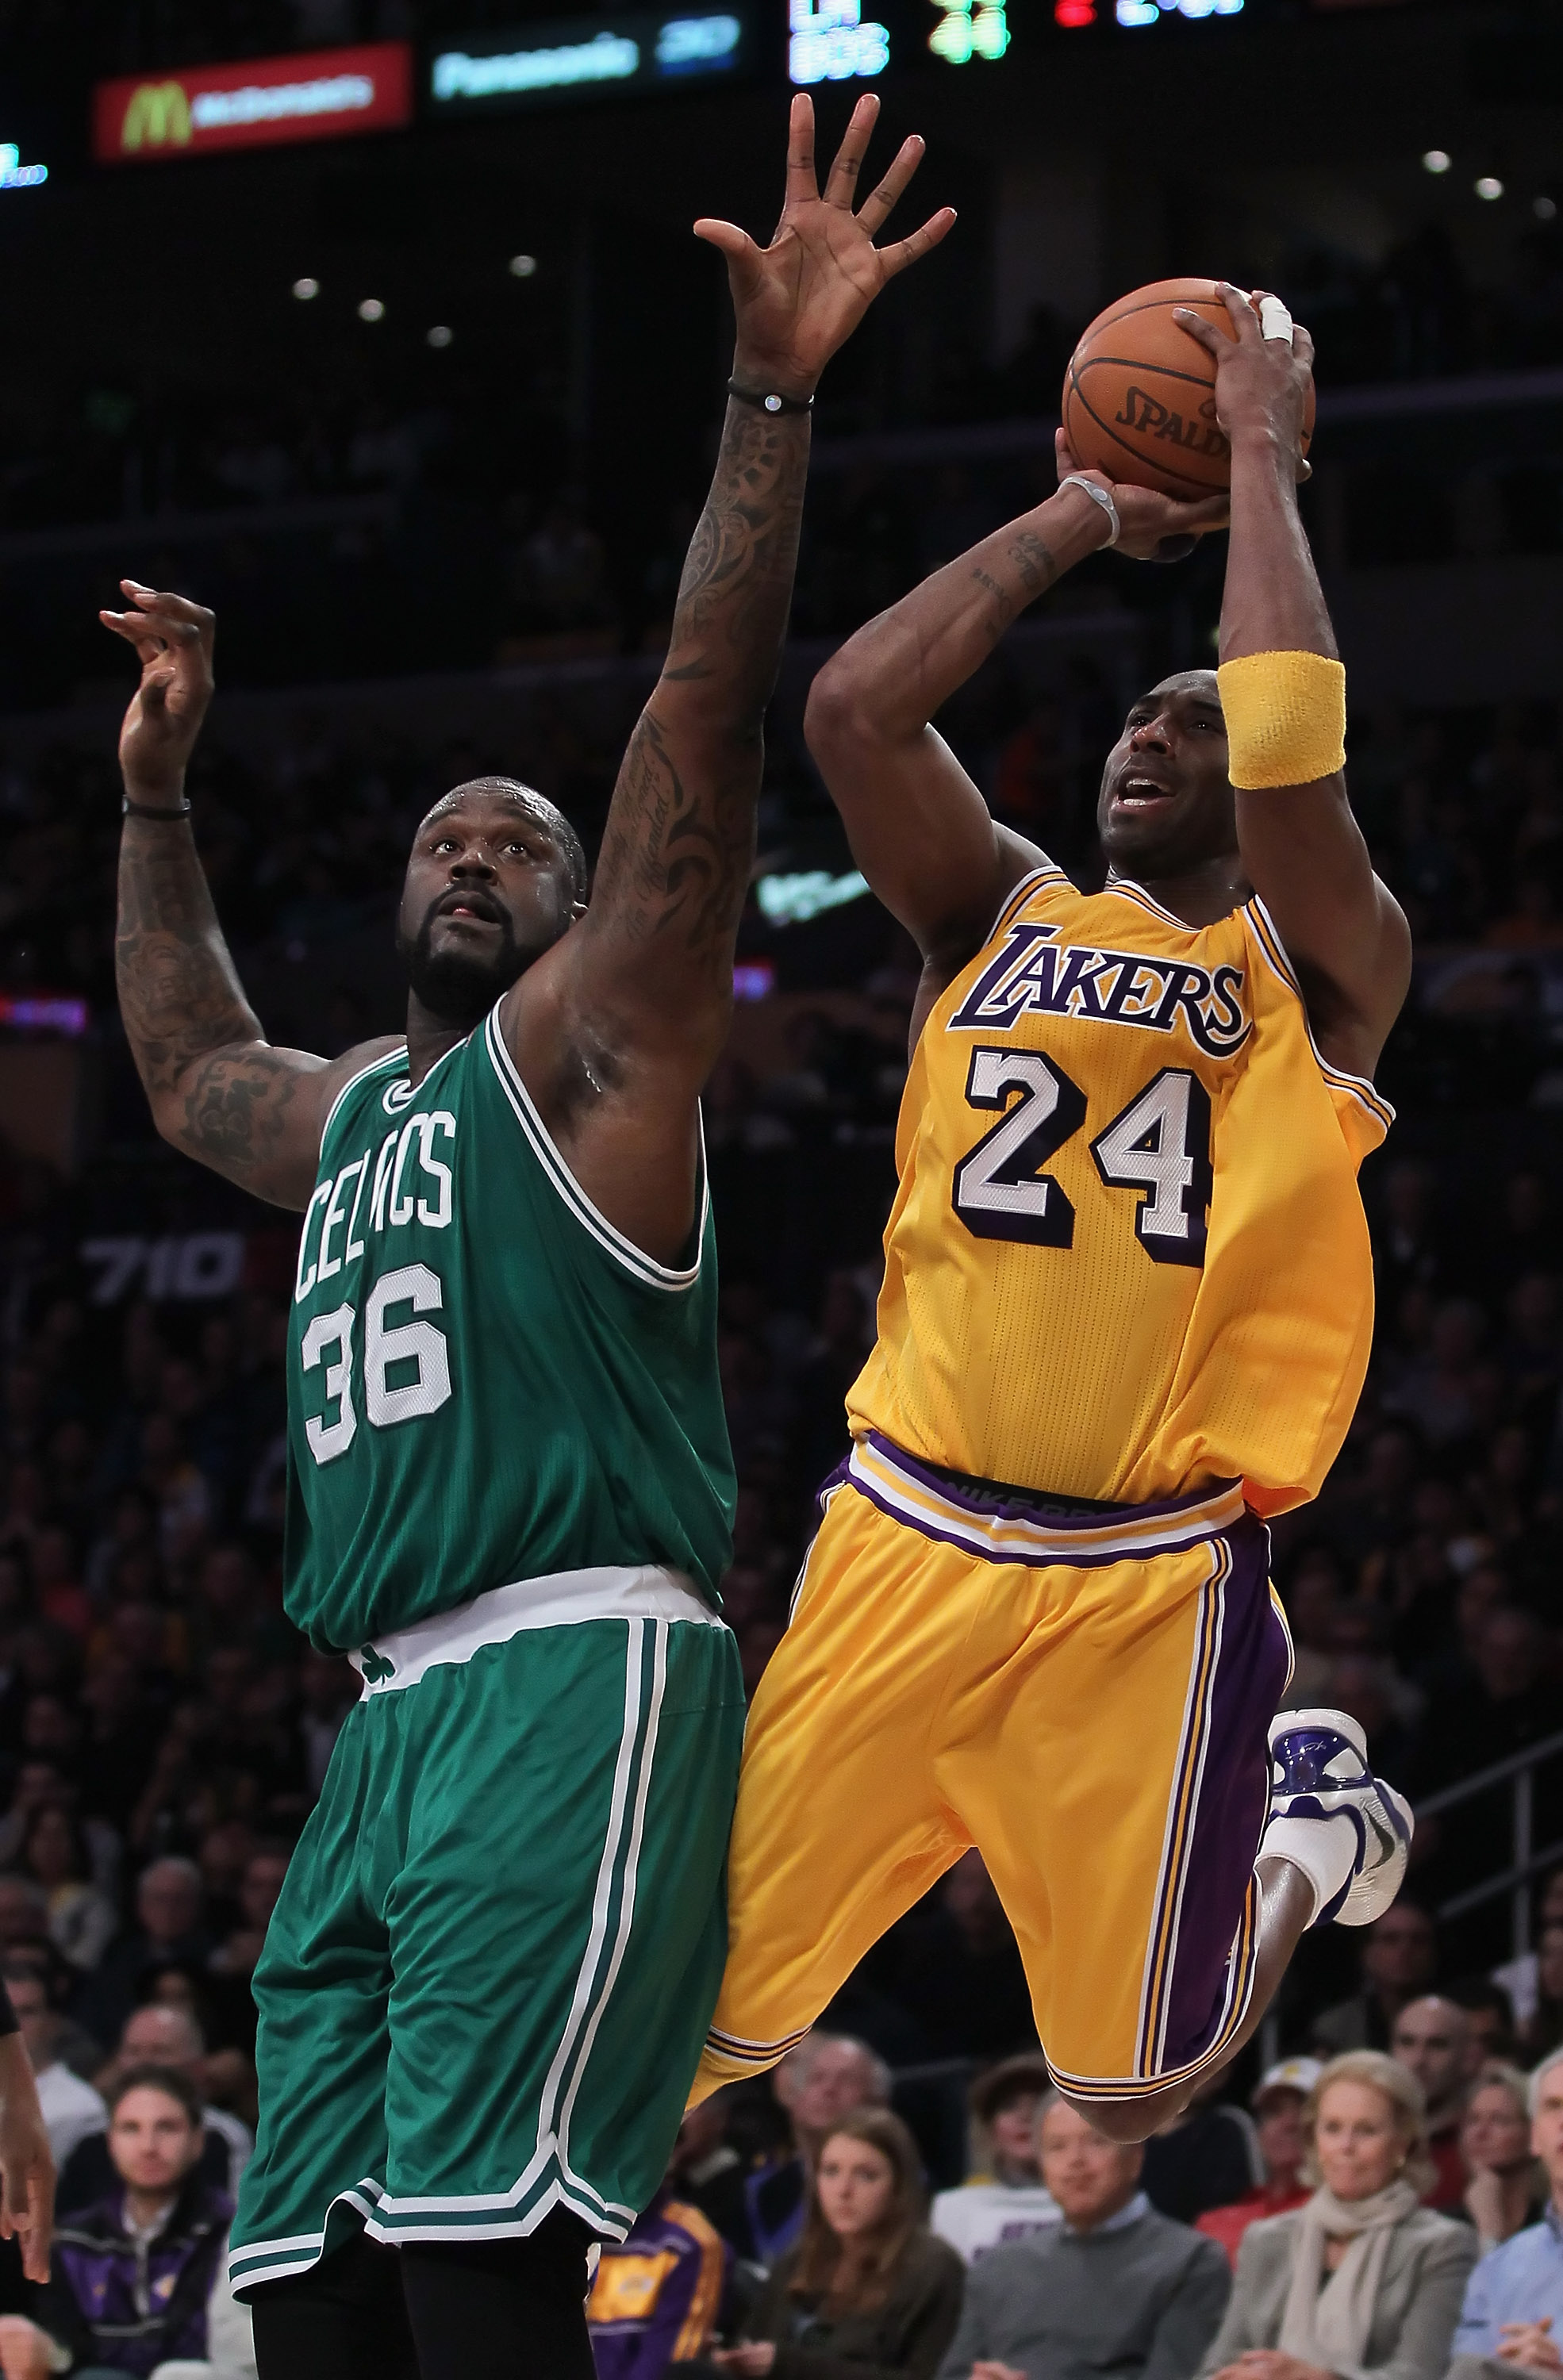 30 for 30 celtics lakers